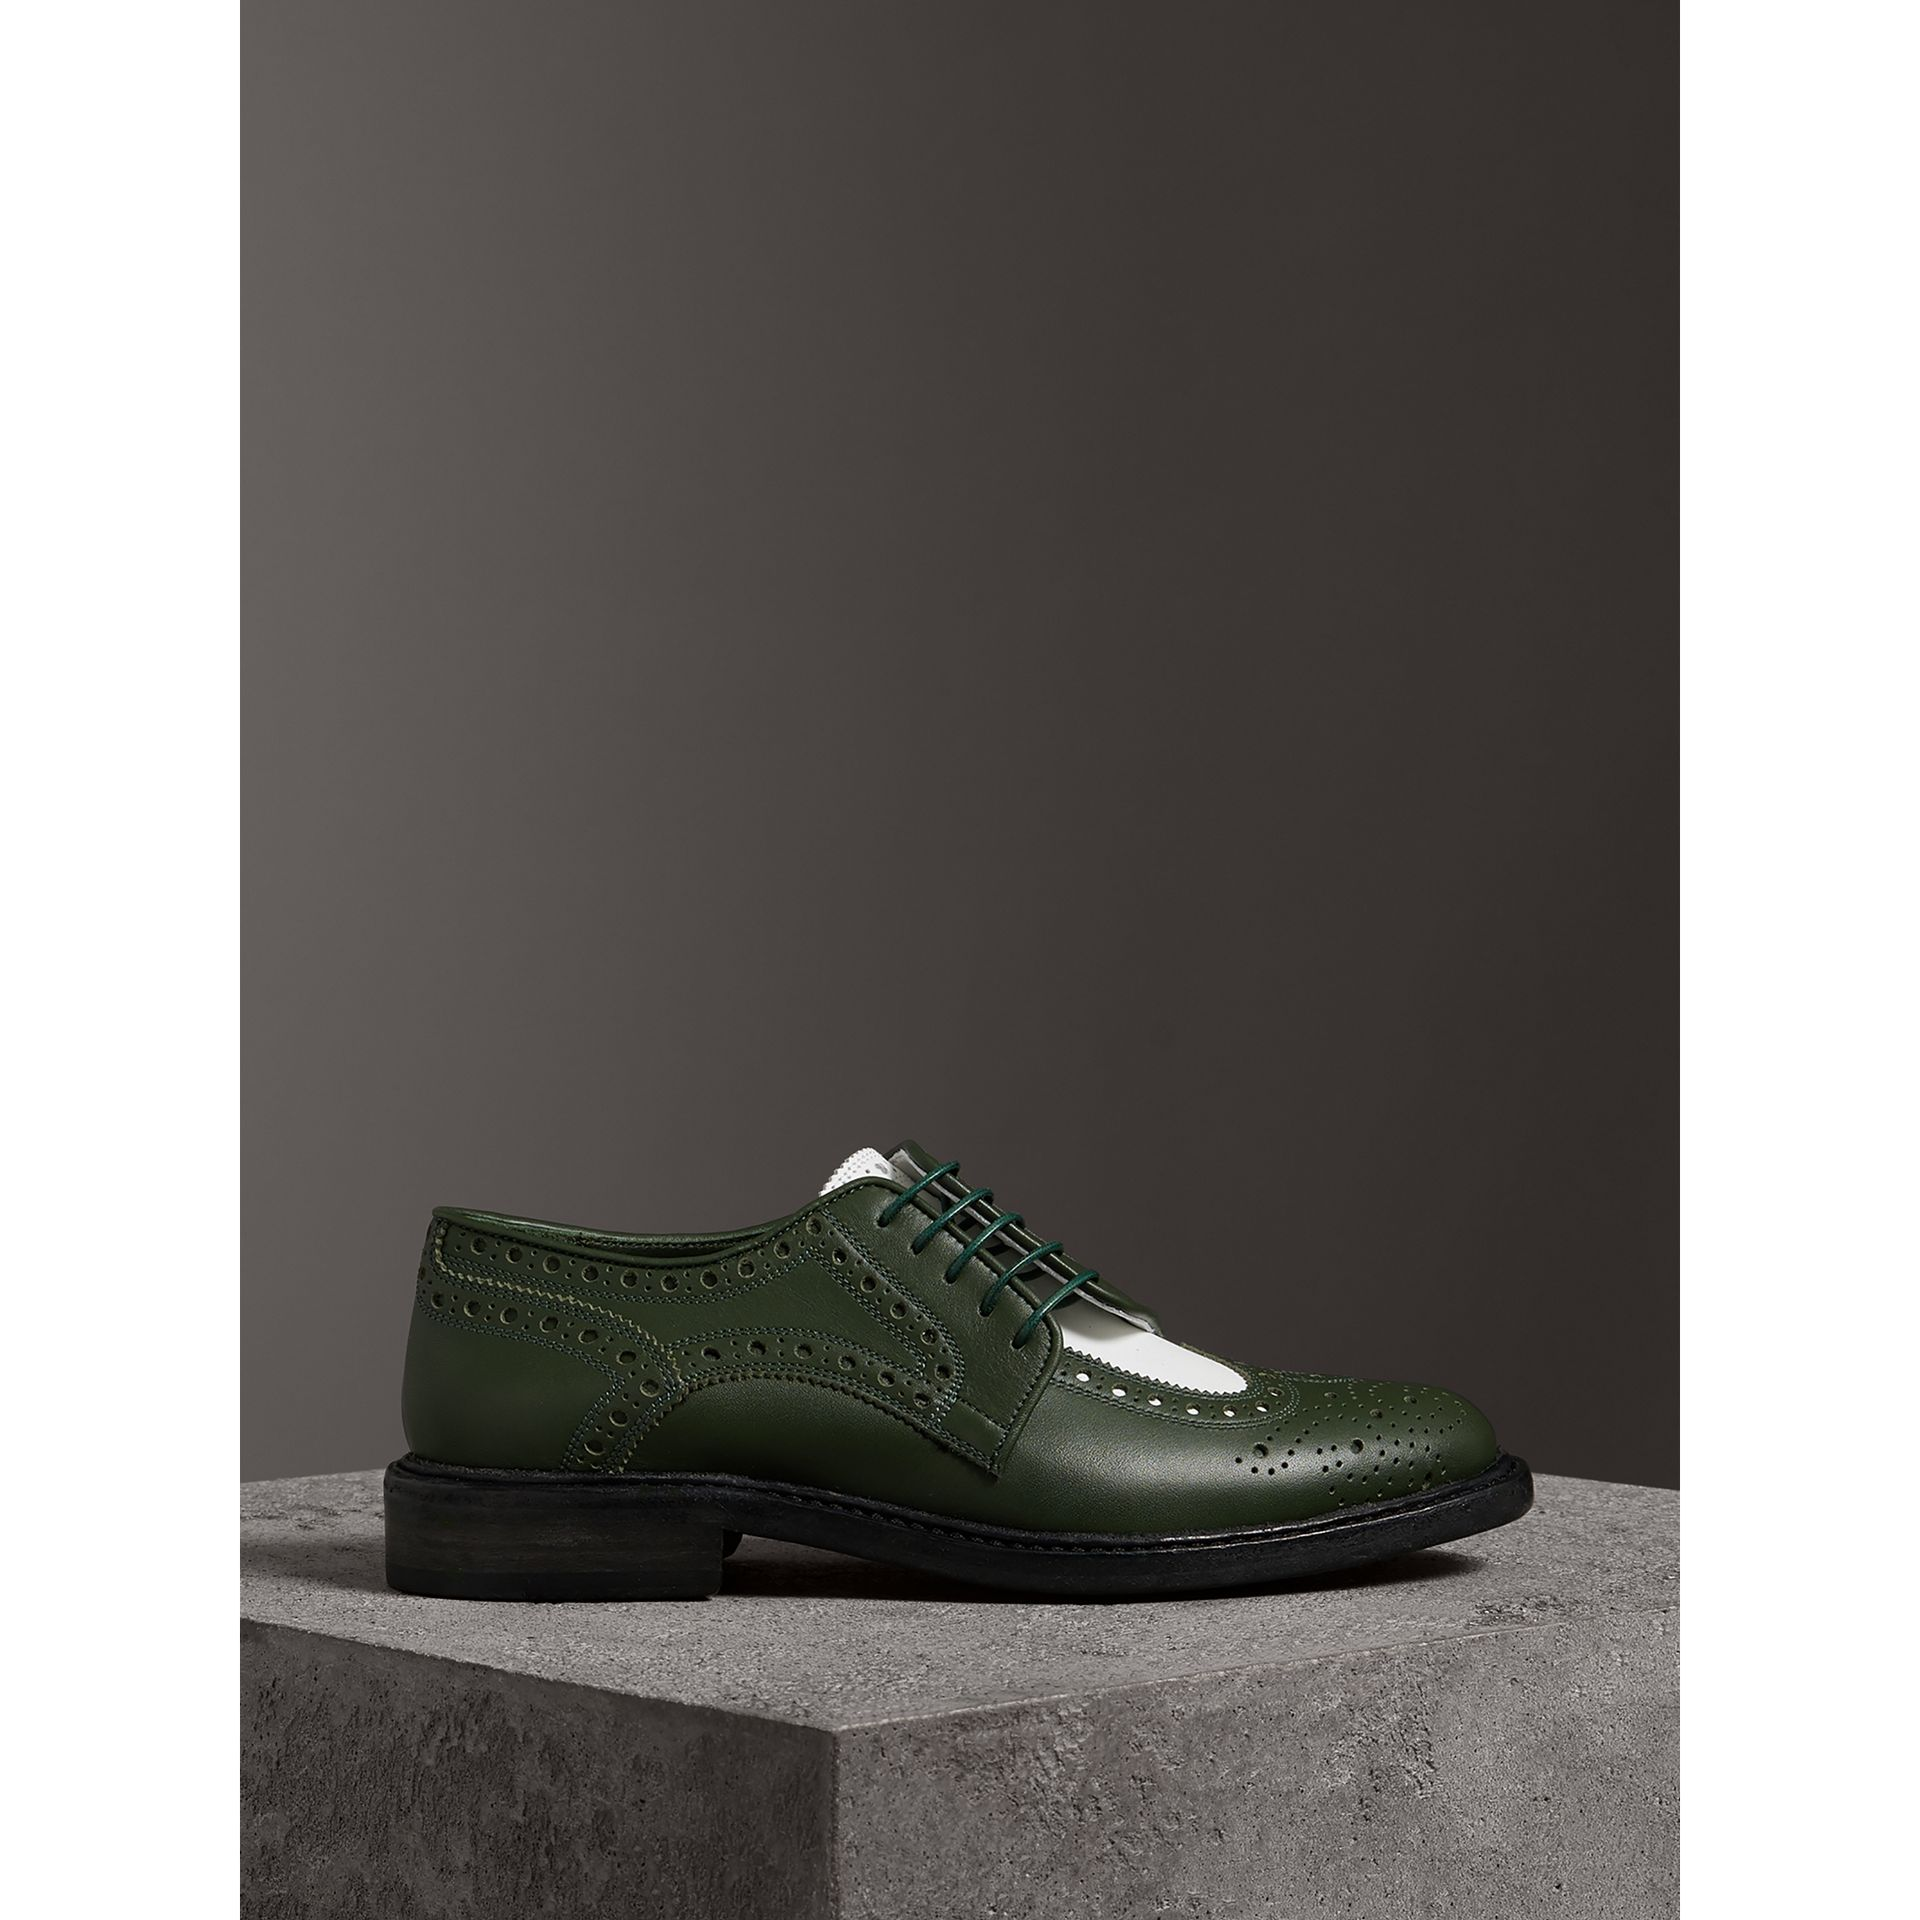 Two-tone Asymmetric Closure Leather Brogues in Dark Green - Women | Burberry - gallery image 4